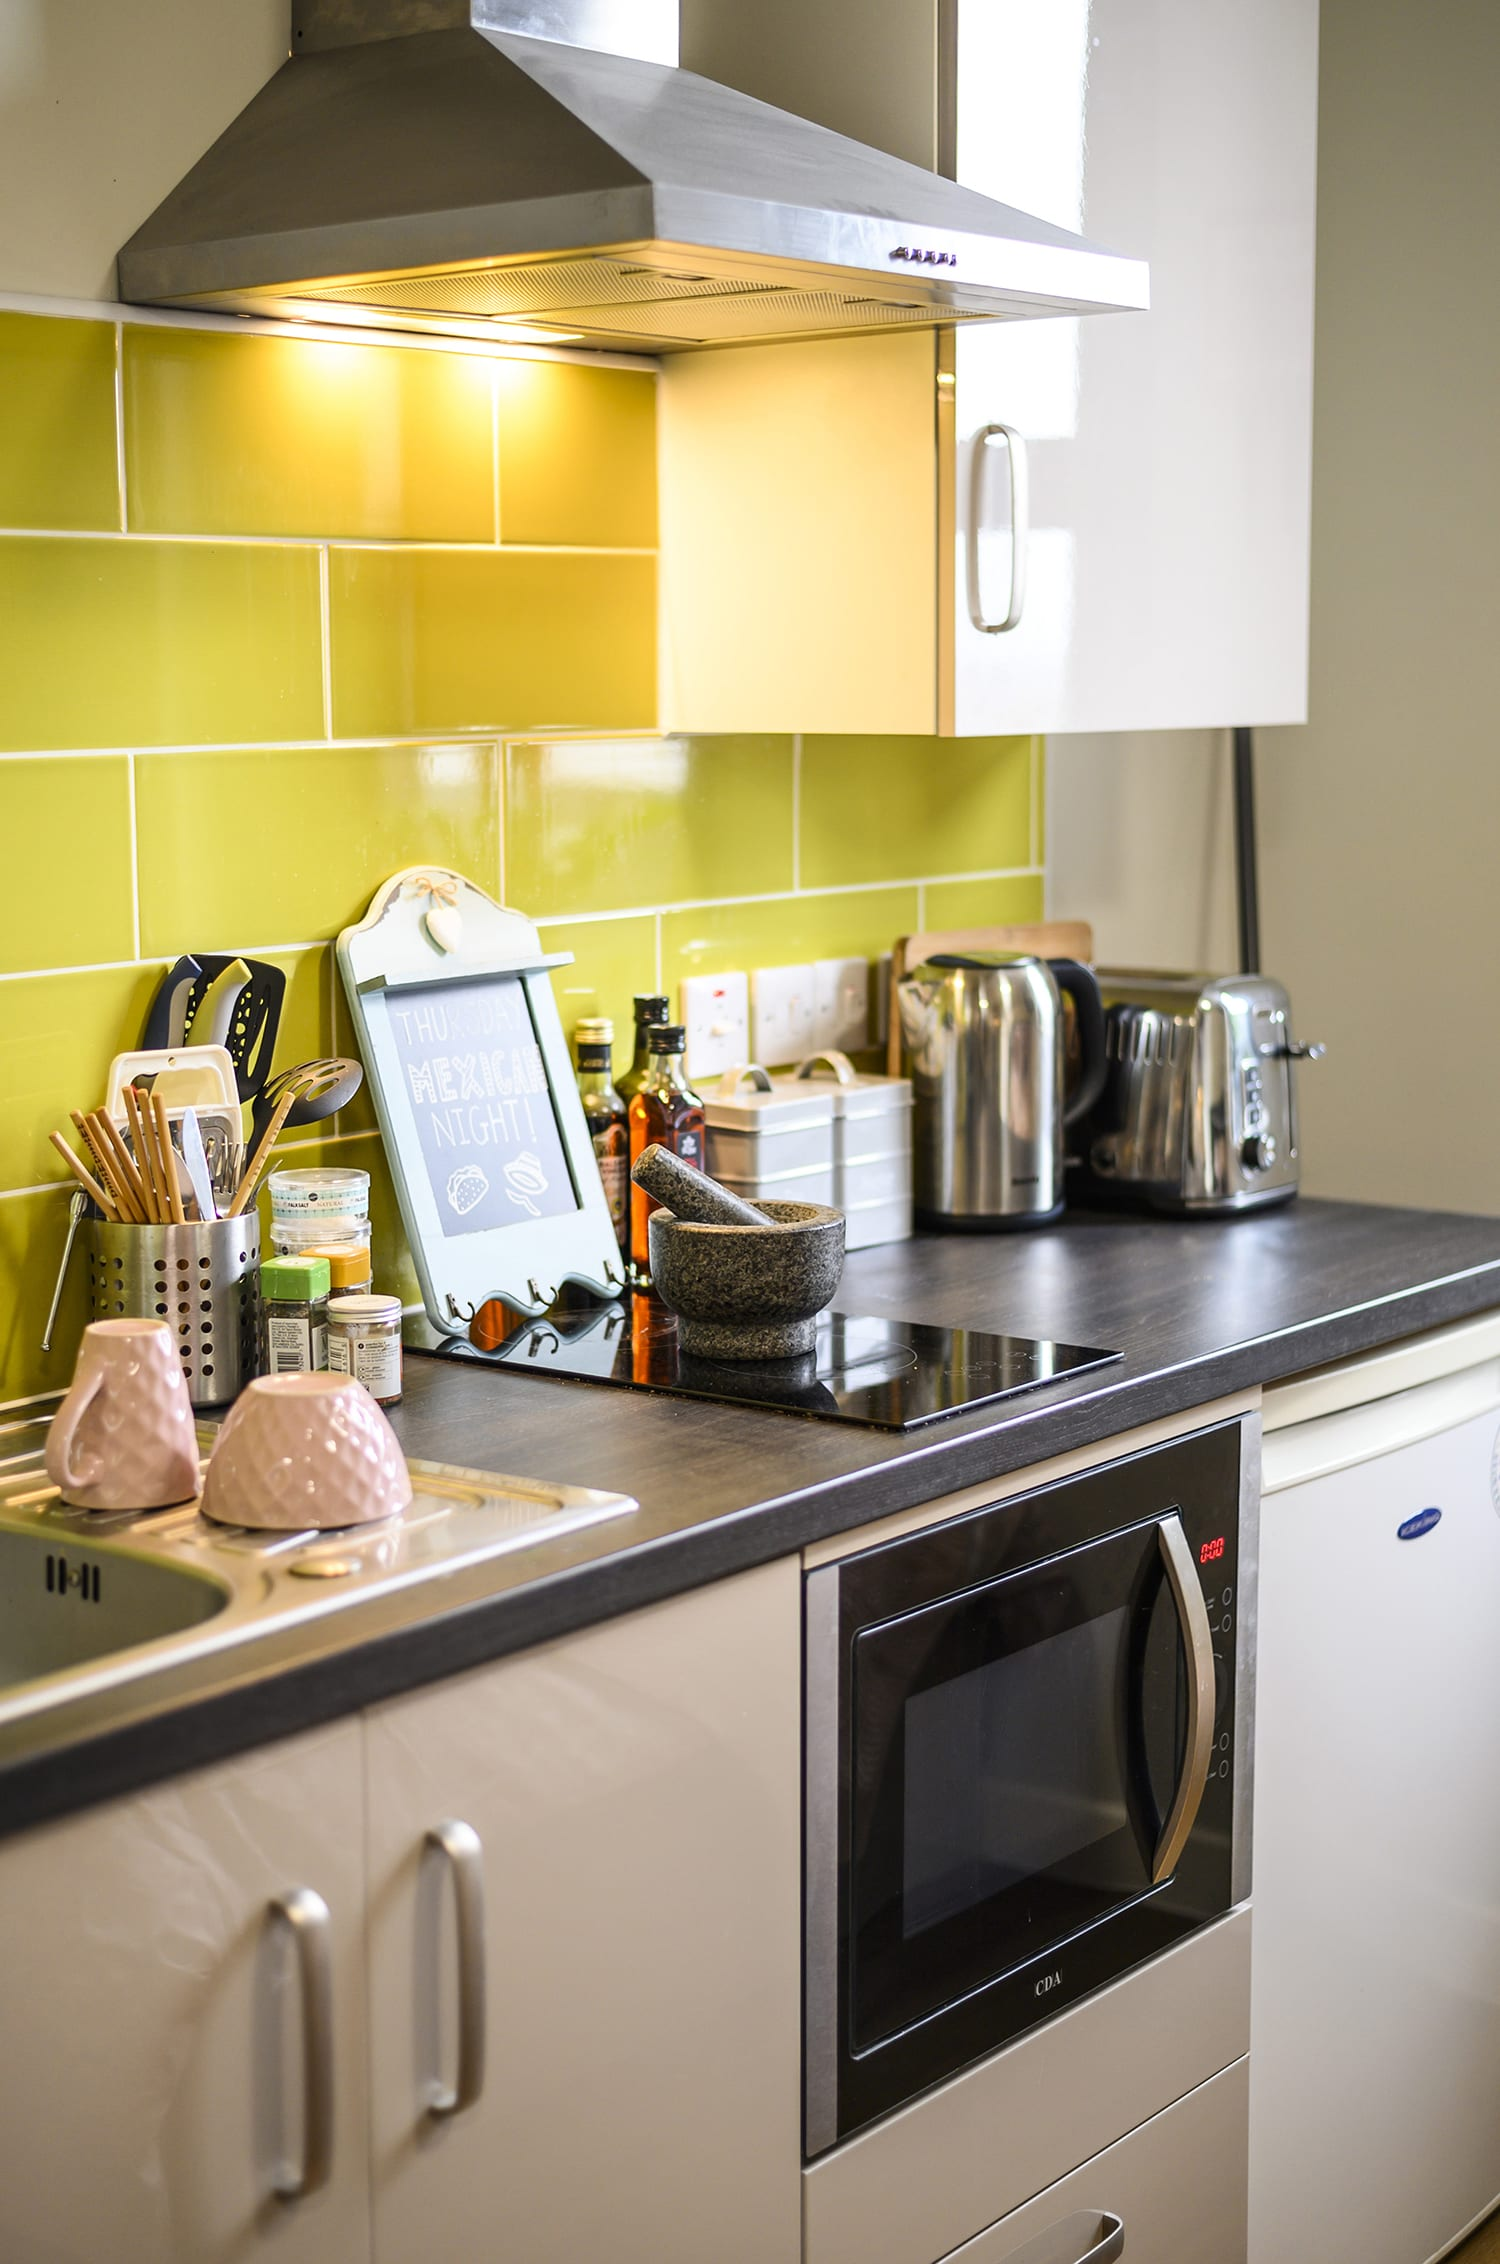 oven and kitchen workspace in Chronicle House student accommodation